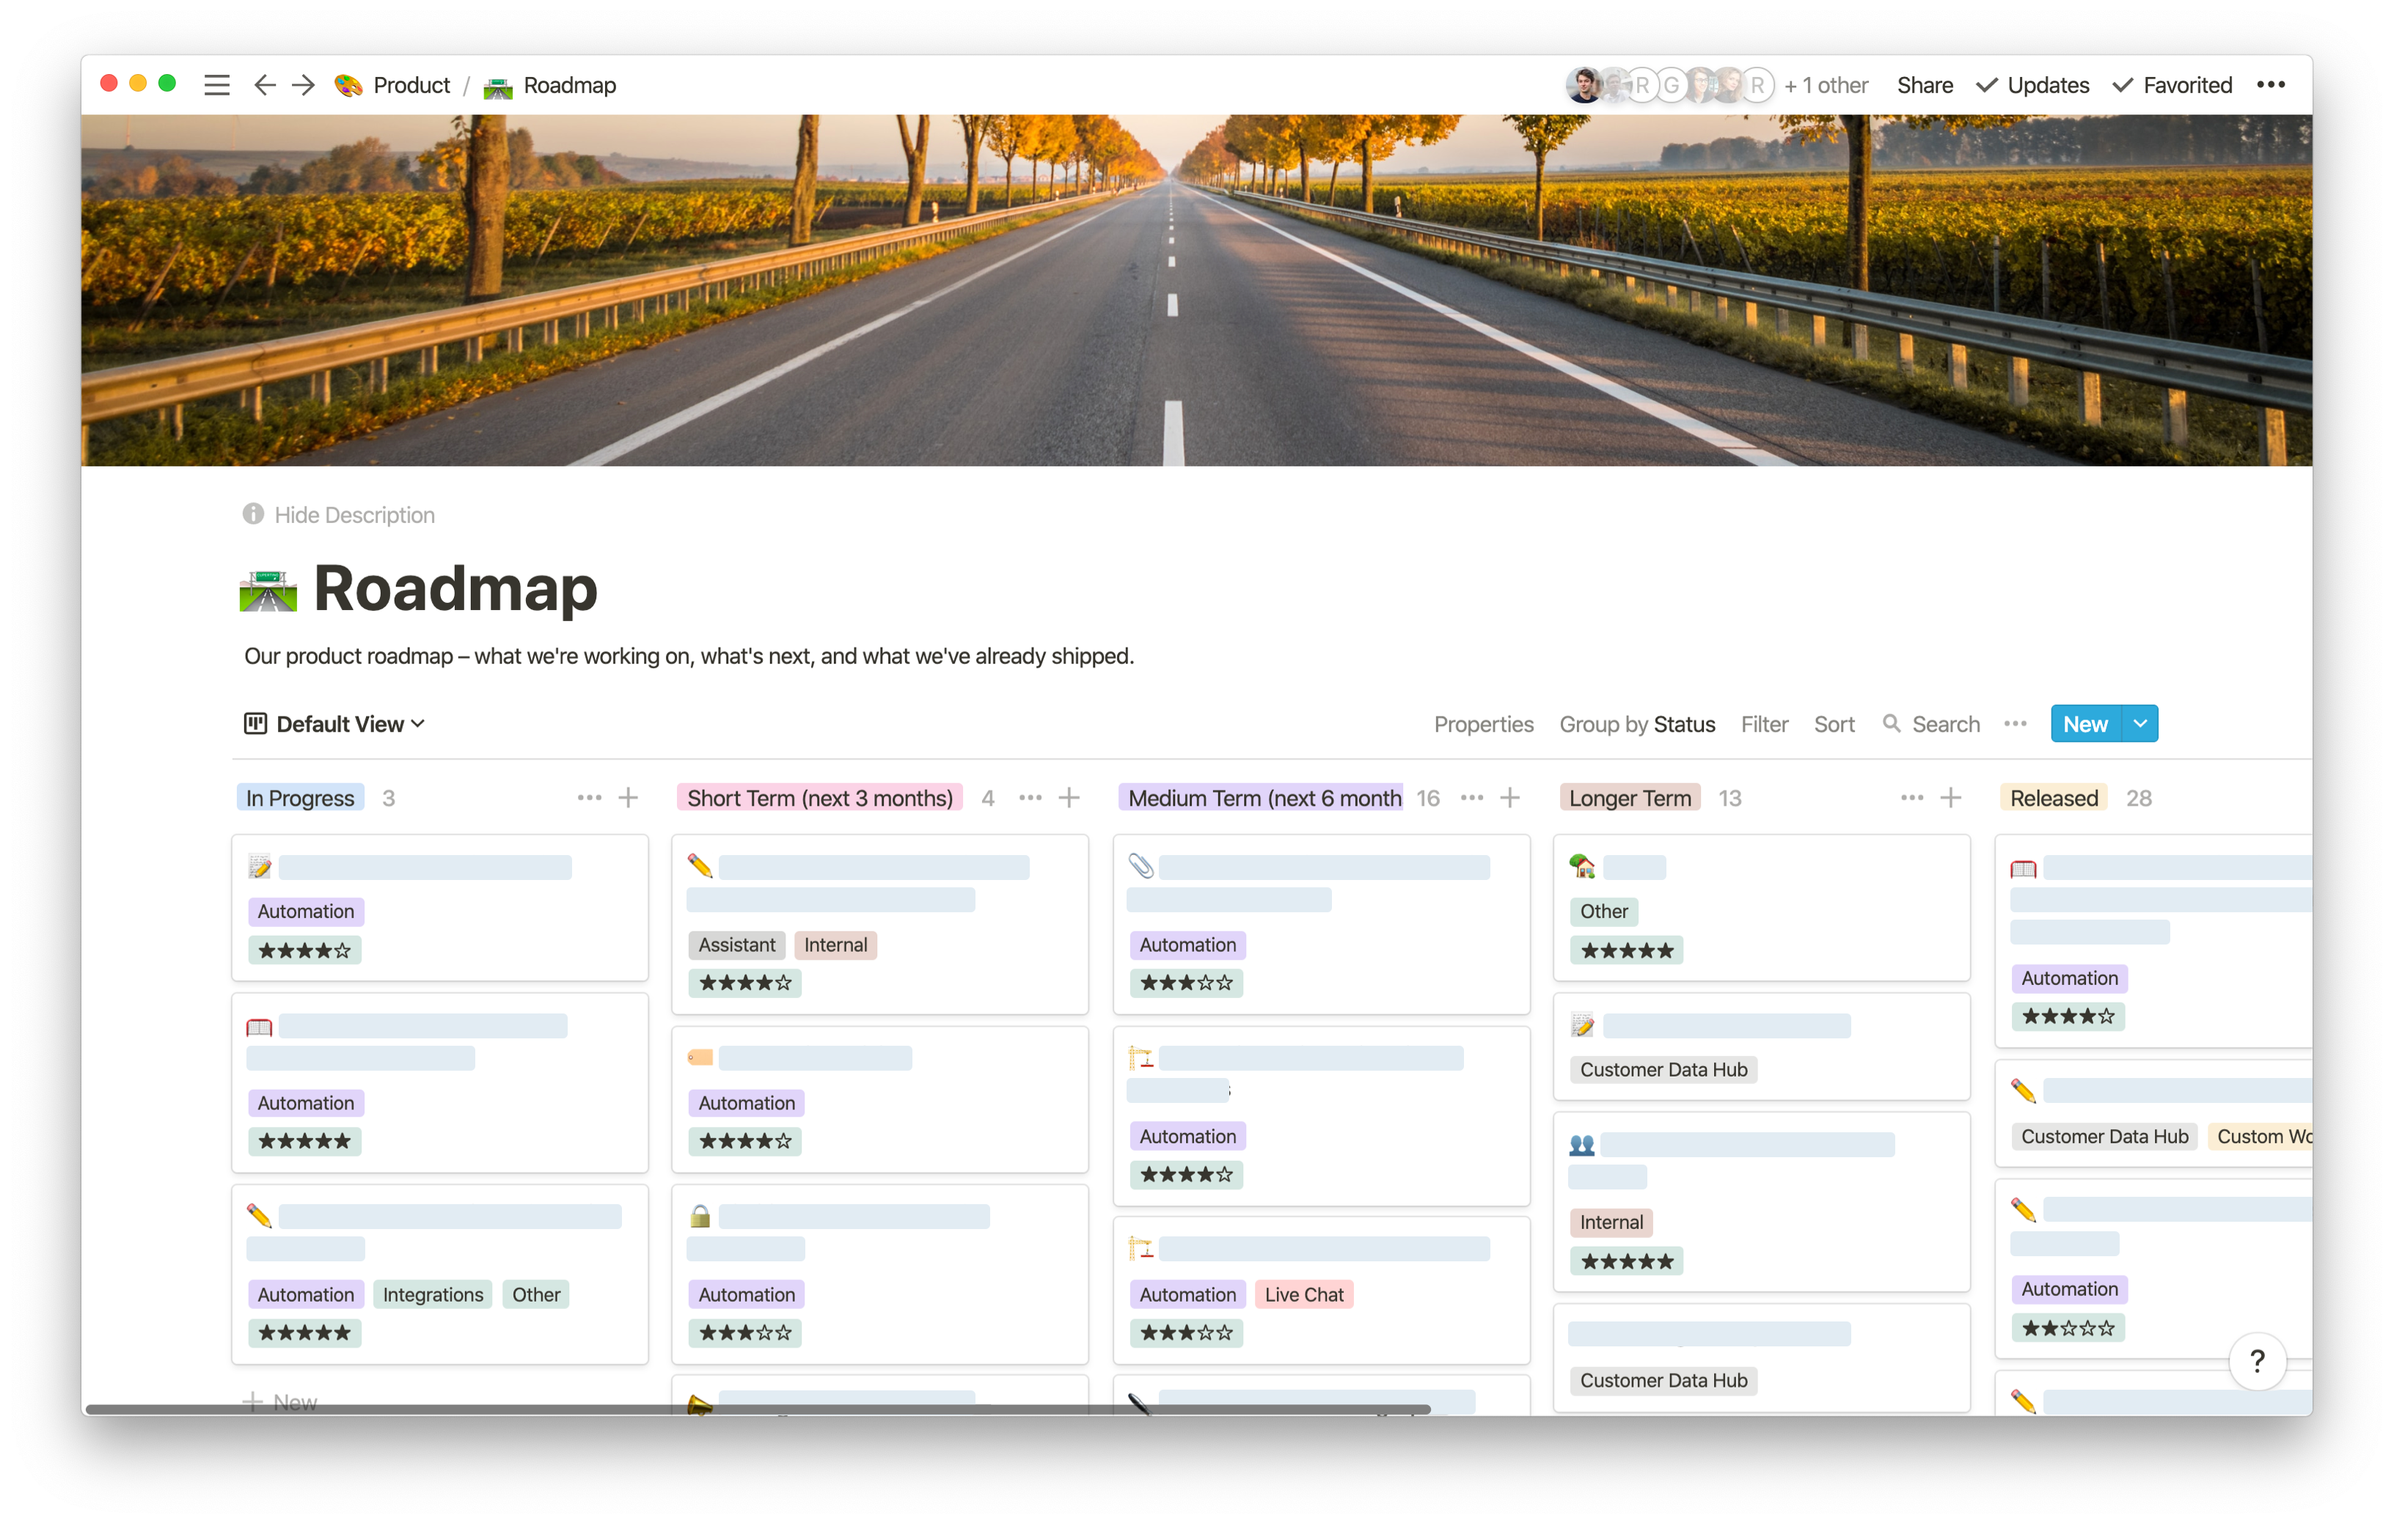 GoSquared product roadmap in Notion